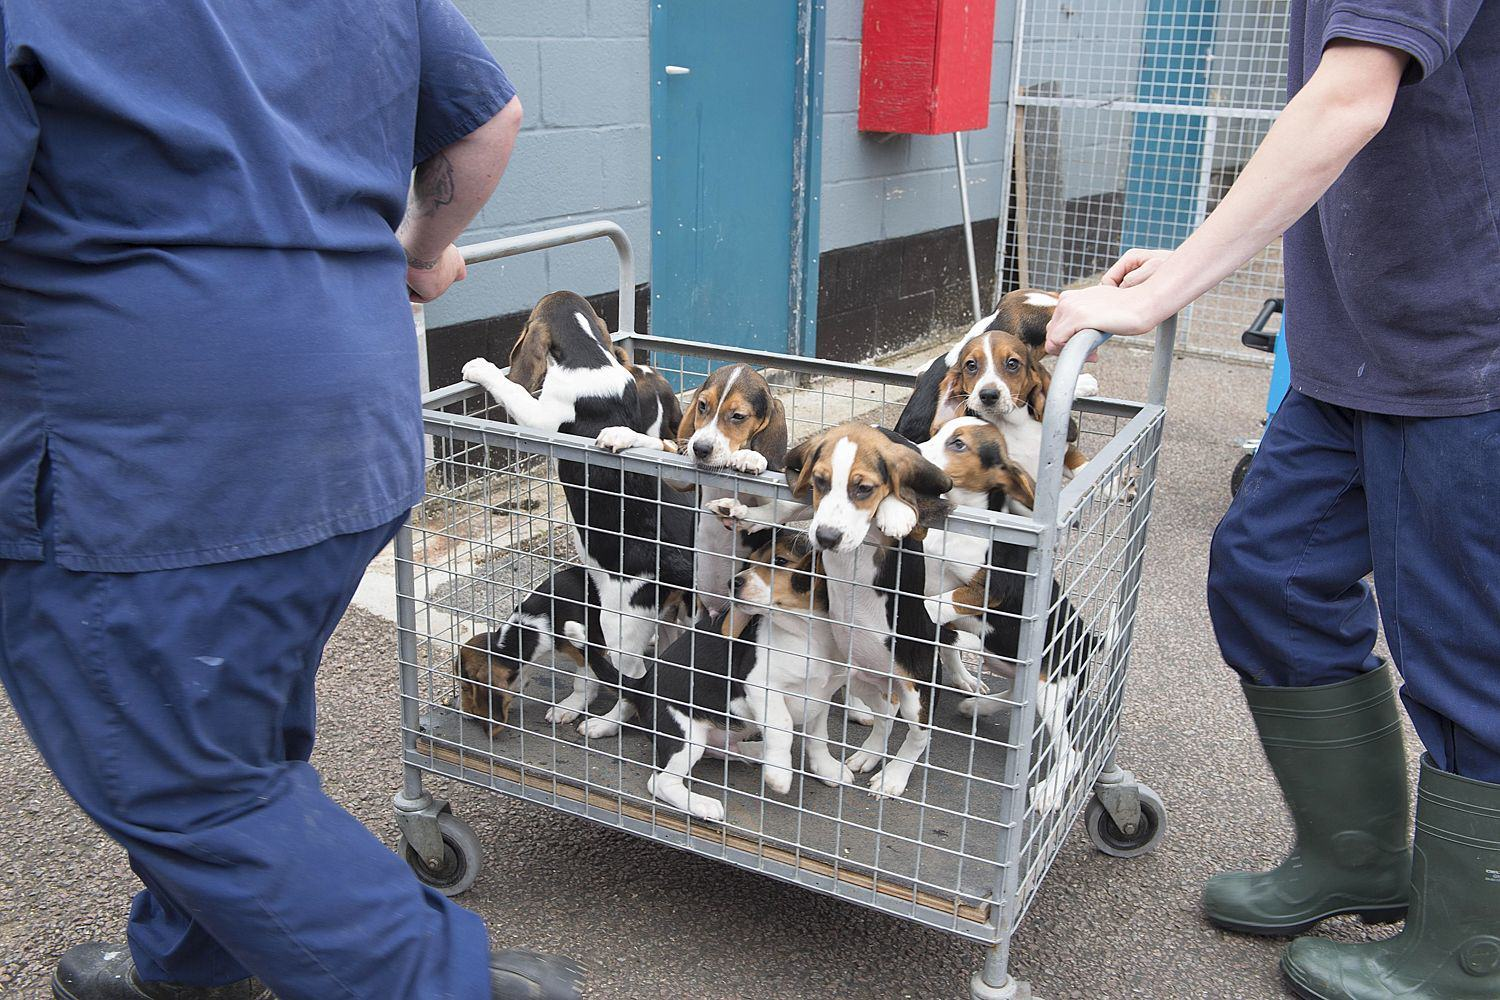 UNILAD 04 1a0d8490 5b27 1 2486859a4 There's A Secretive Farm In Cambridge Where Beagles Are Bred To Die